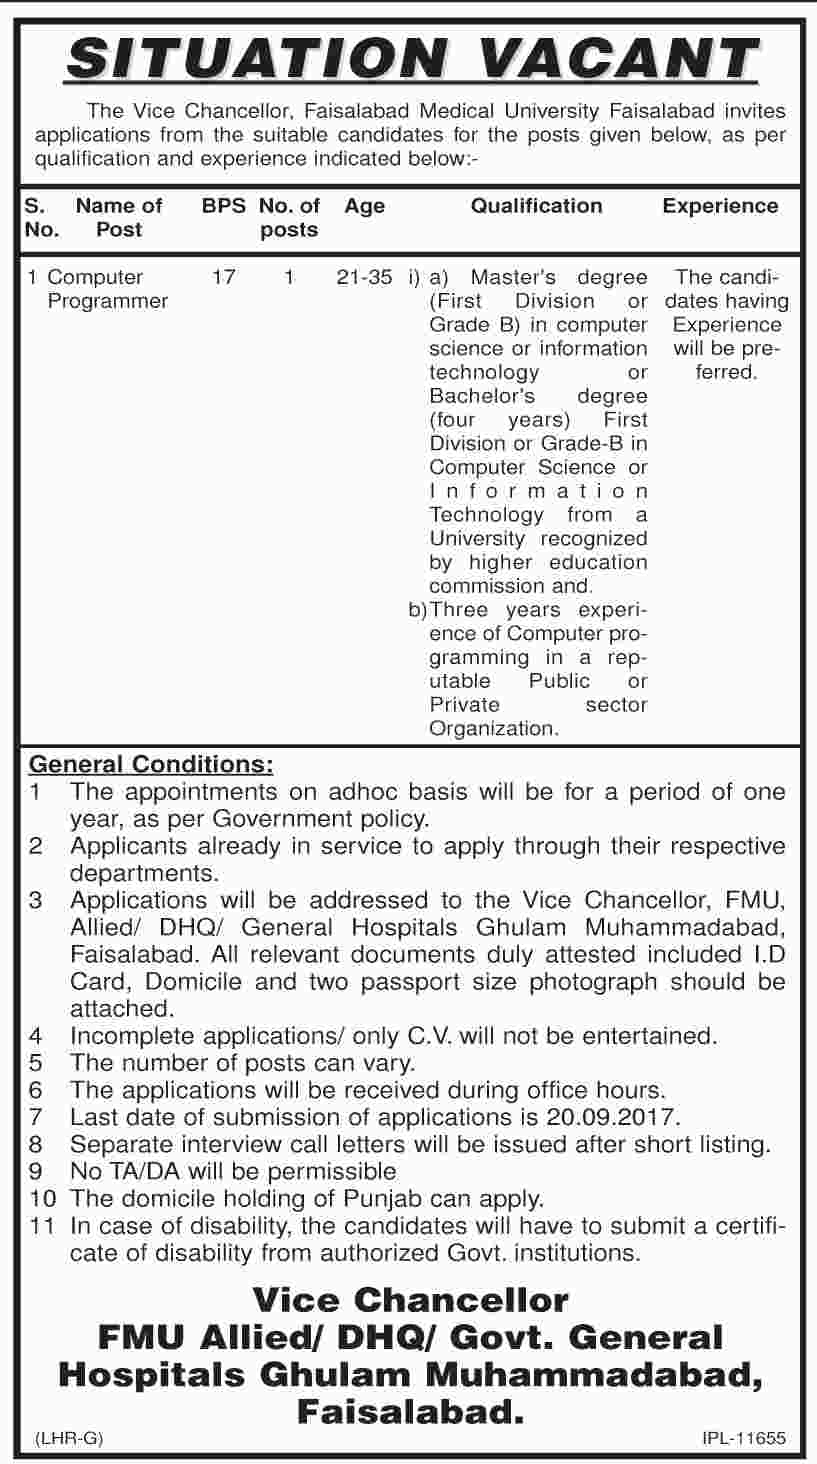 Computer Programmer Required In Faisalabad Medical University